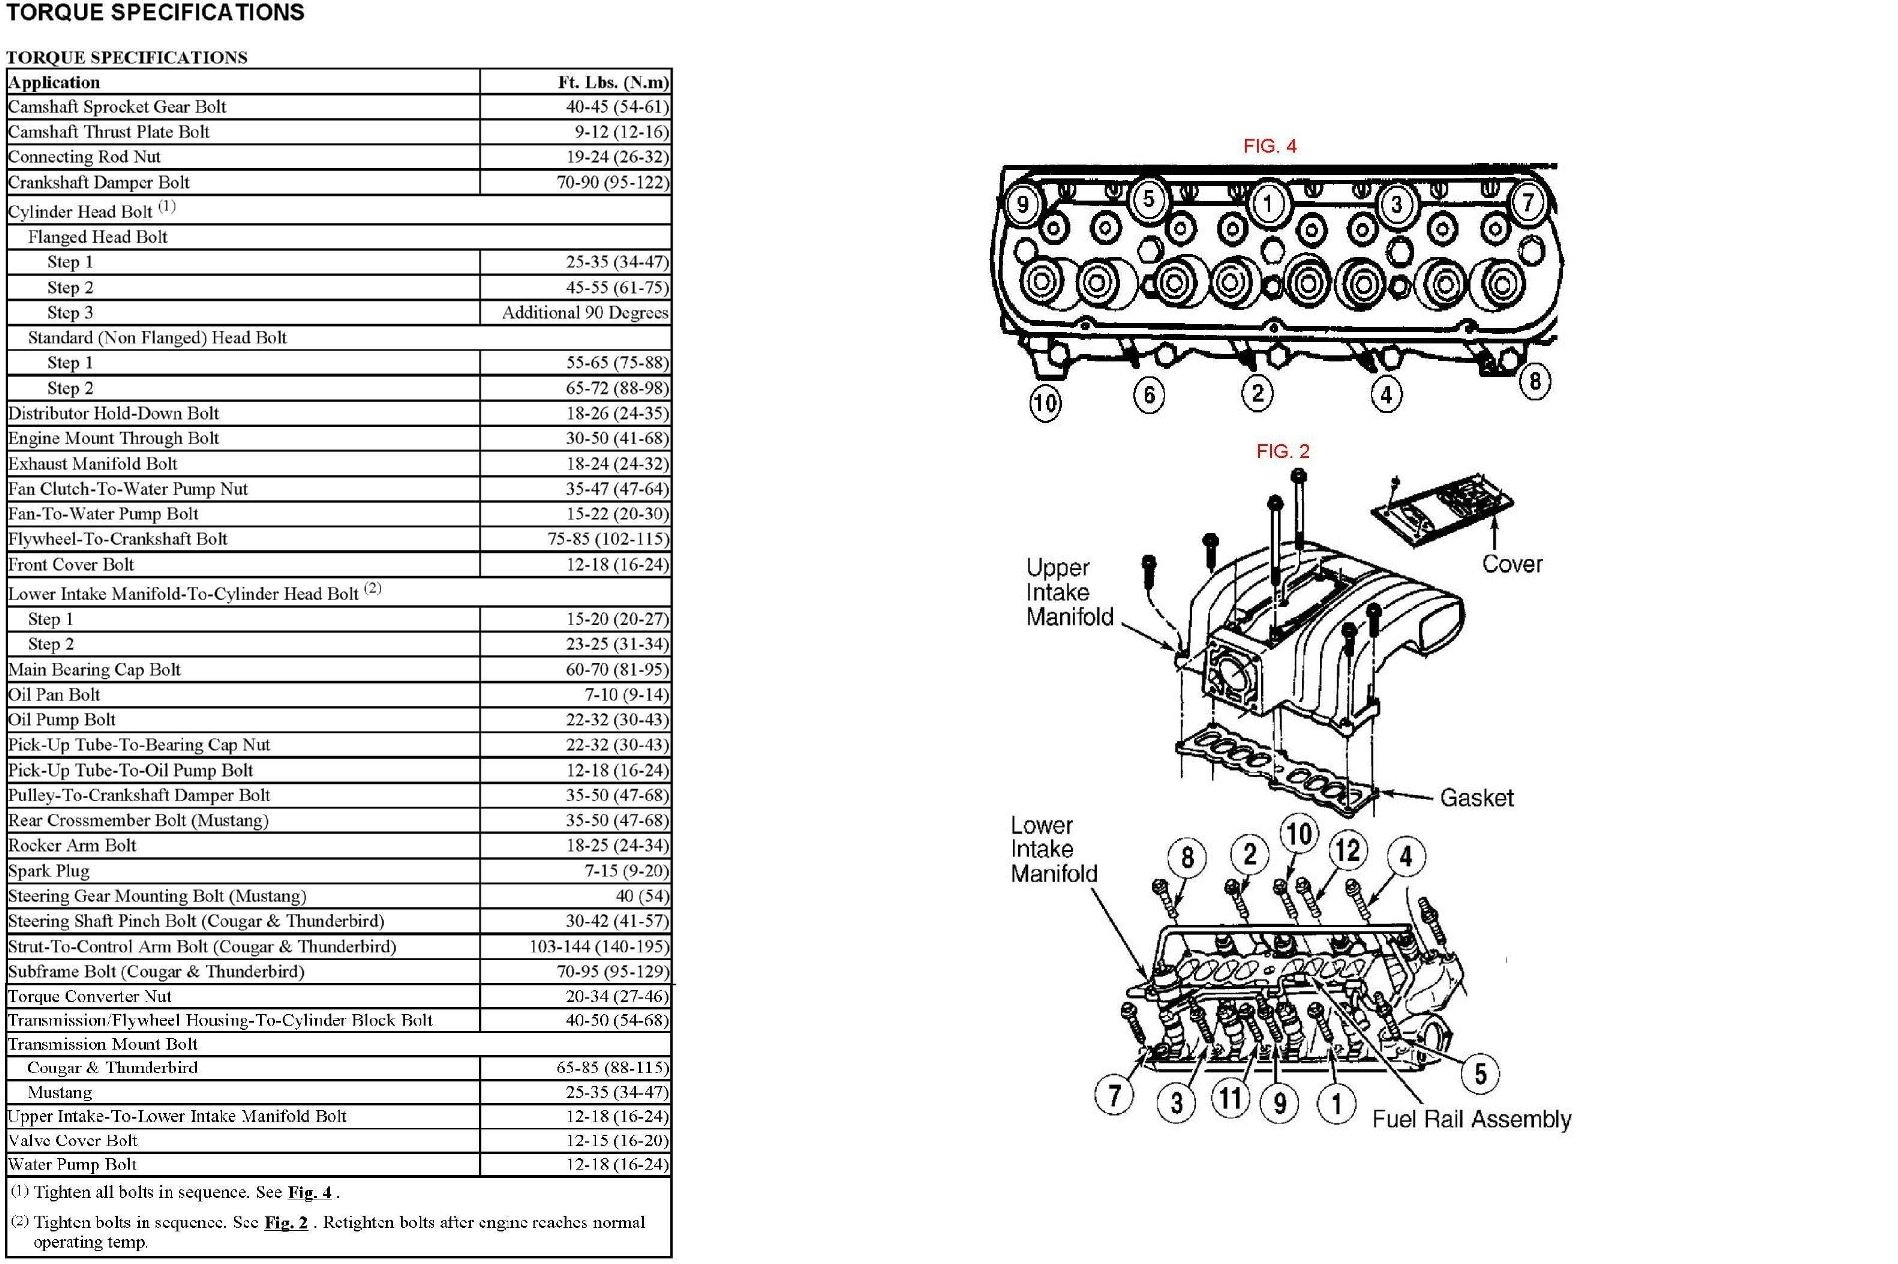 365334 Lower Intake Manifold Removal on 1994 Toyota Camry Motor Mount Diagram